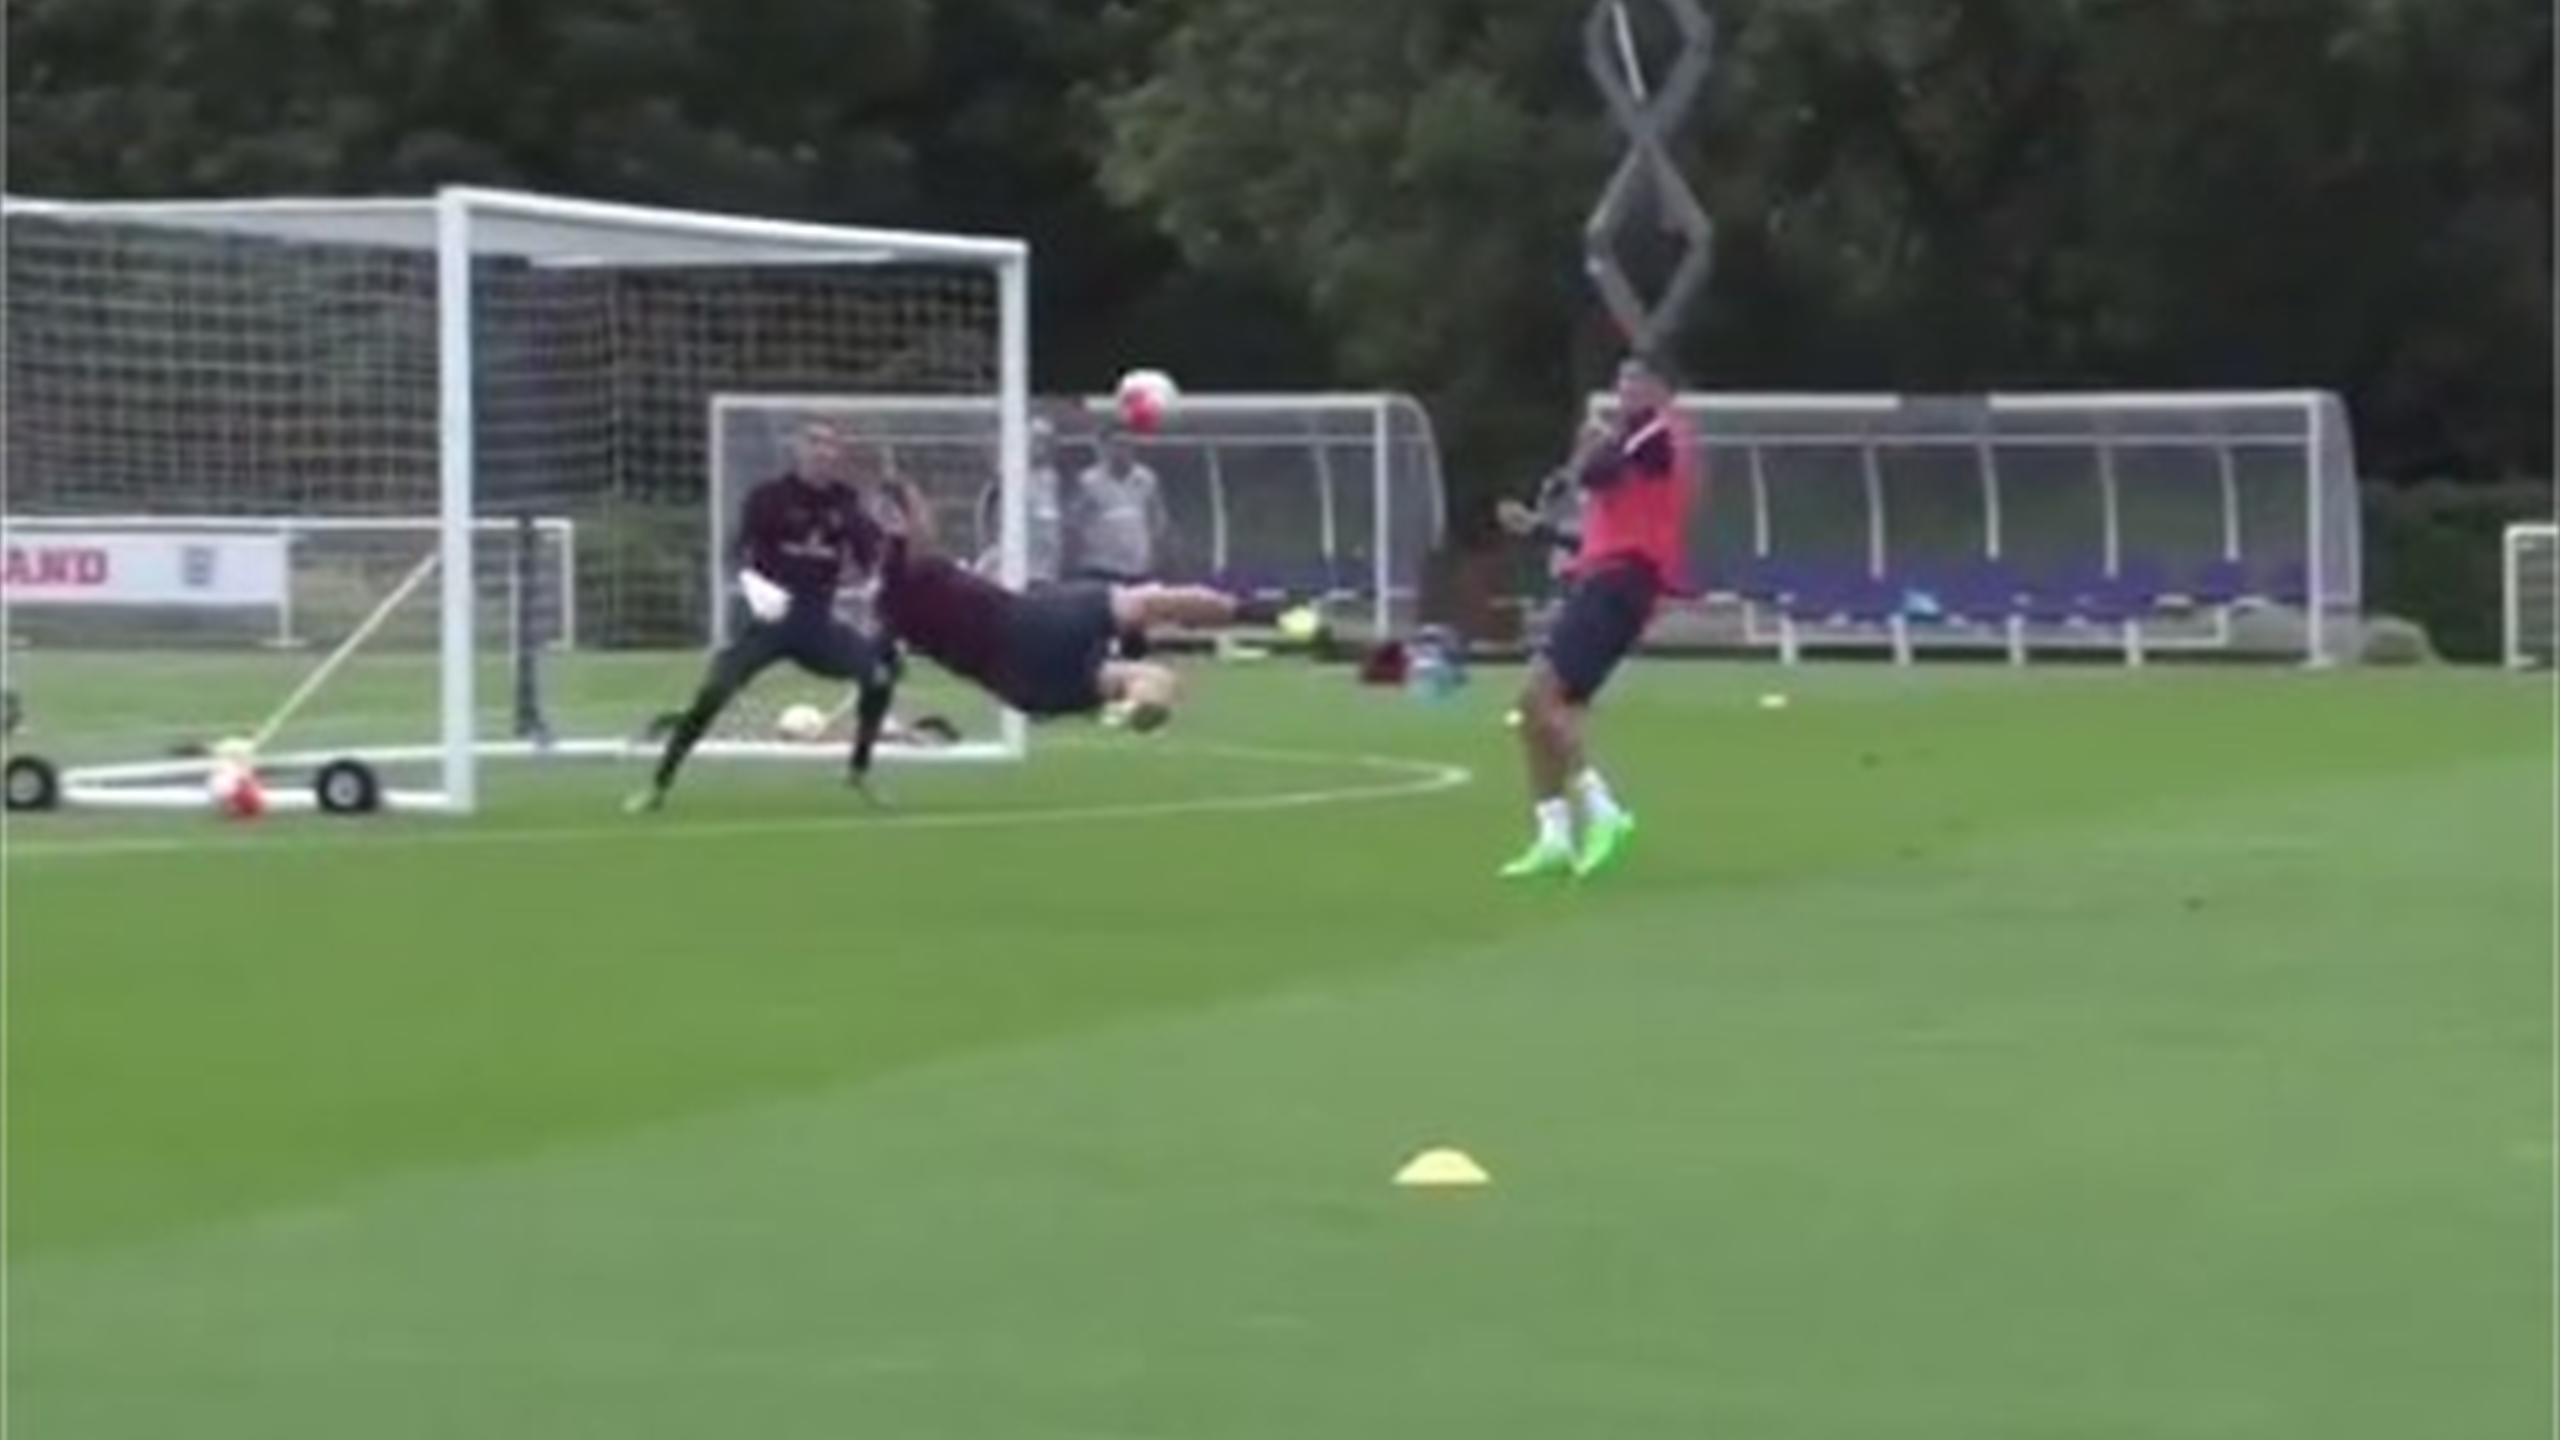 Phil Jagielka scores an amazing overhead goal in training for England (Instagram)